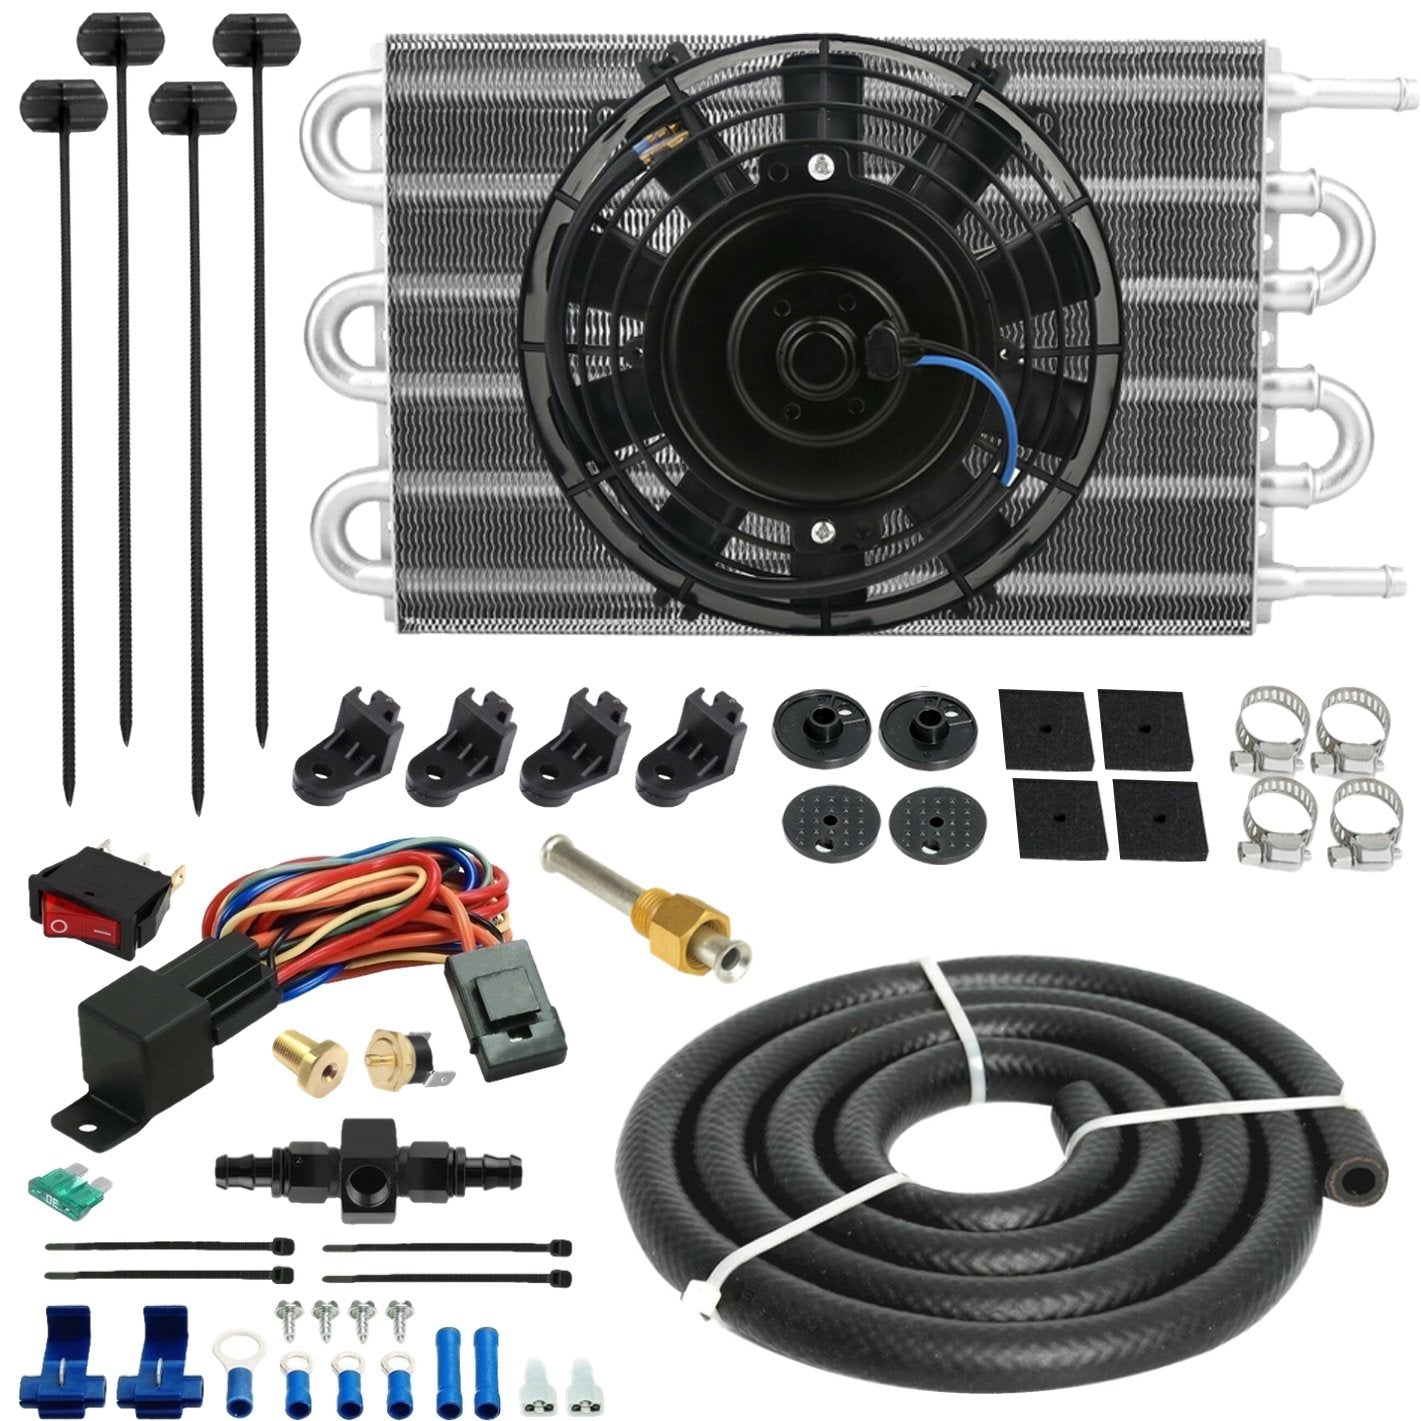 6 Row Aluminum Engine Transmission Oil Cooler Electric Fan In-Line Hose Thermostat Switch Kit-Oil Cooler-American Volt-6AN-140'F ON - 125'F OFF-American Volt